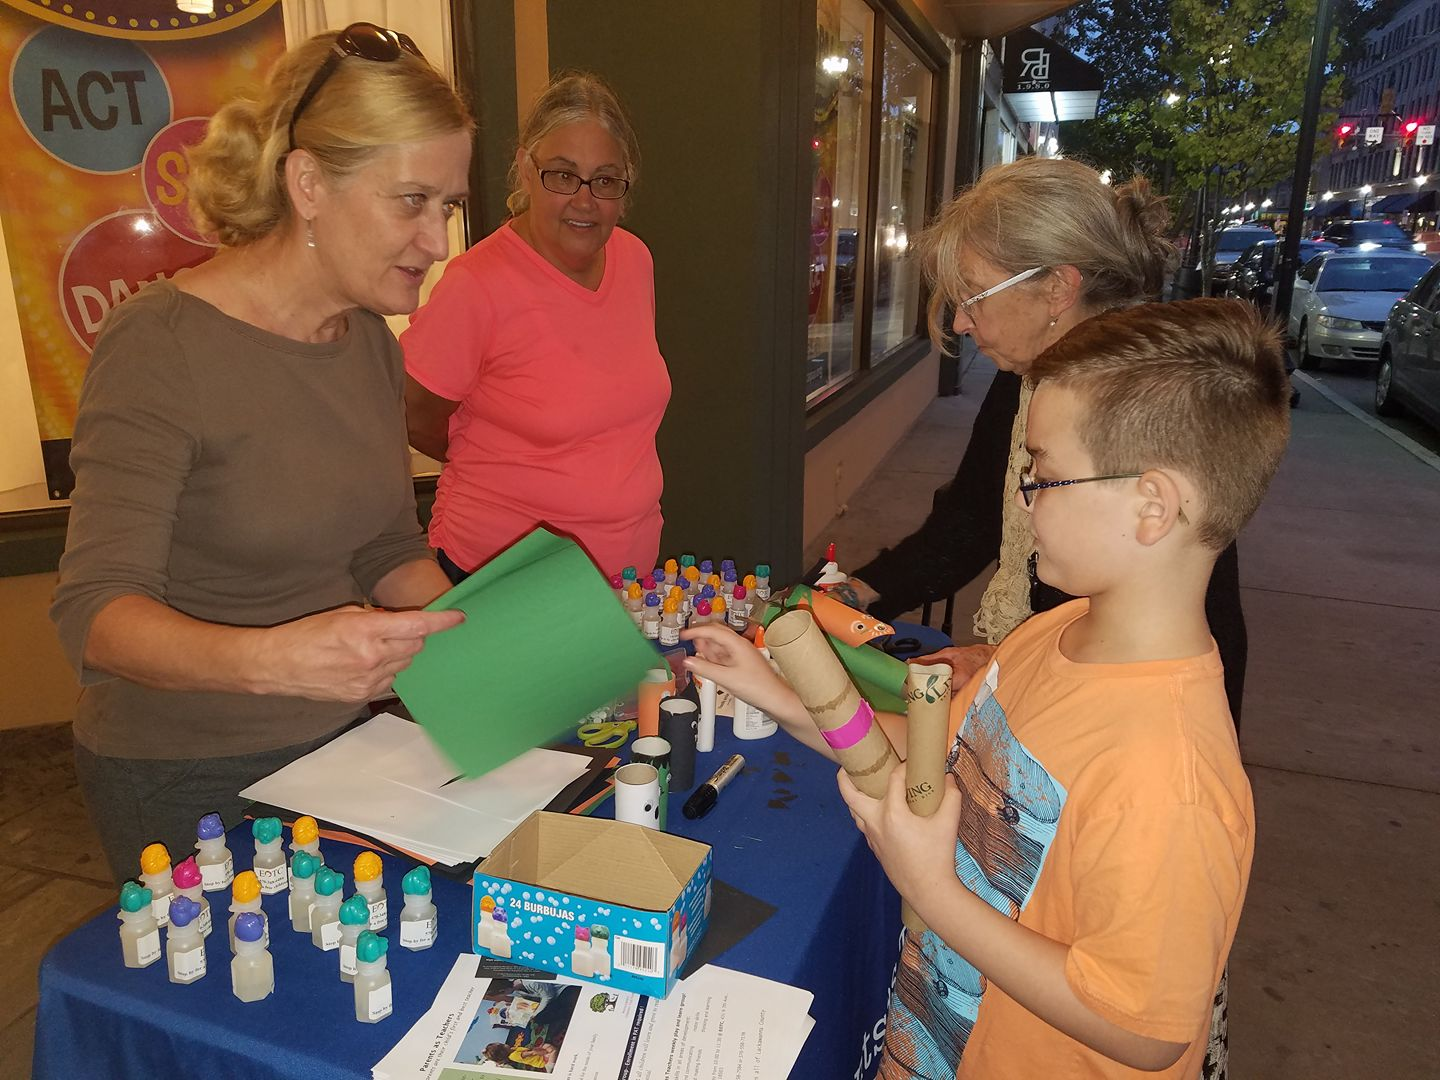 Outreach's Community Advisory Board members enjoy First Friday activities with a child in downtown Scranton.